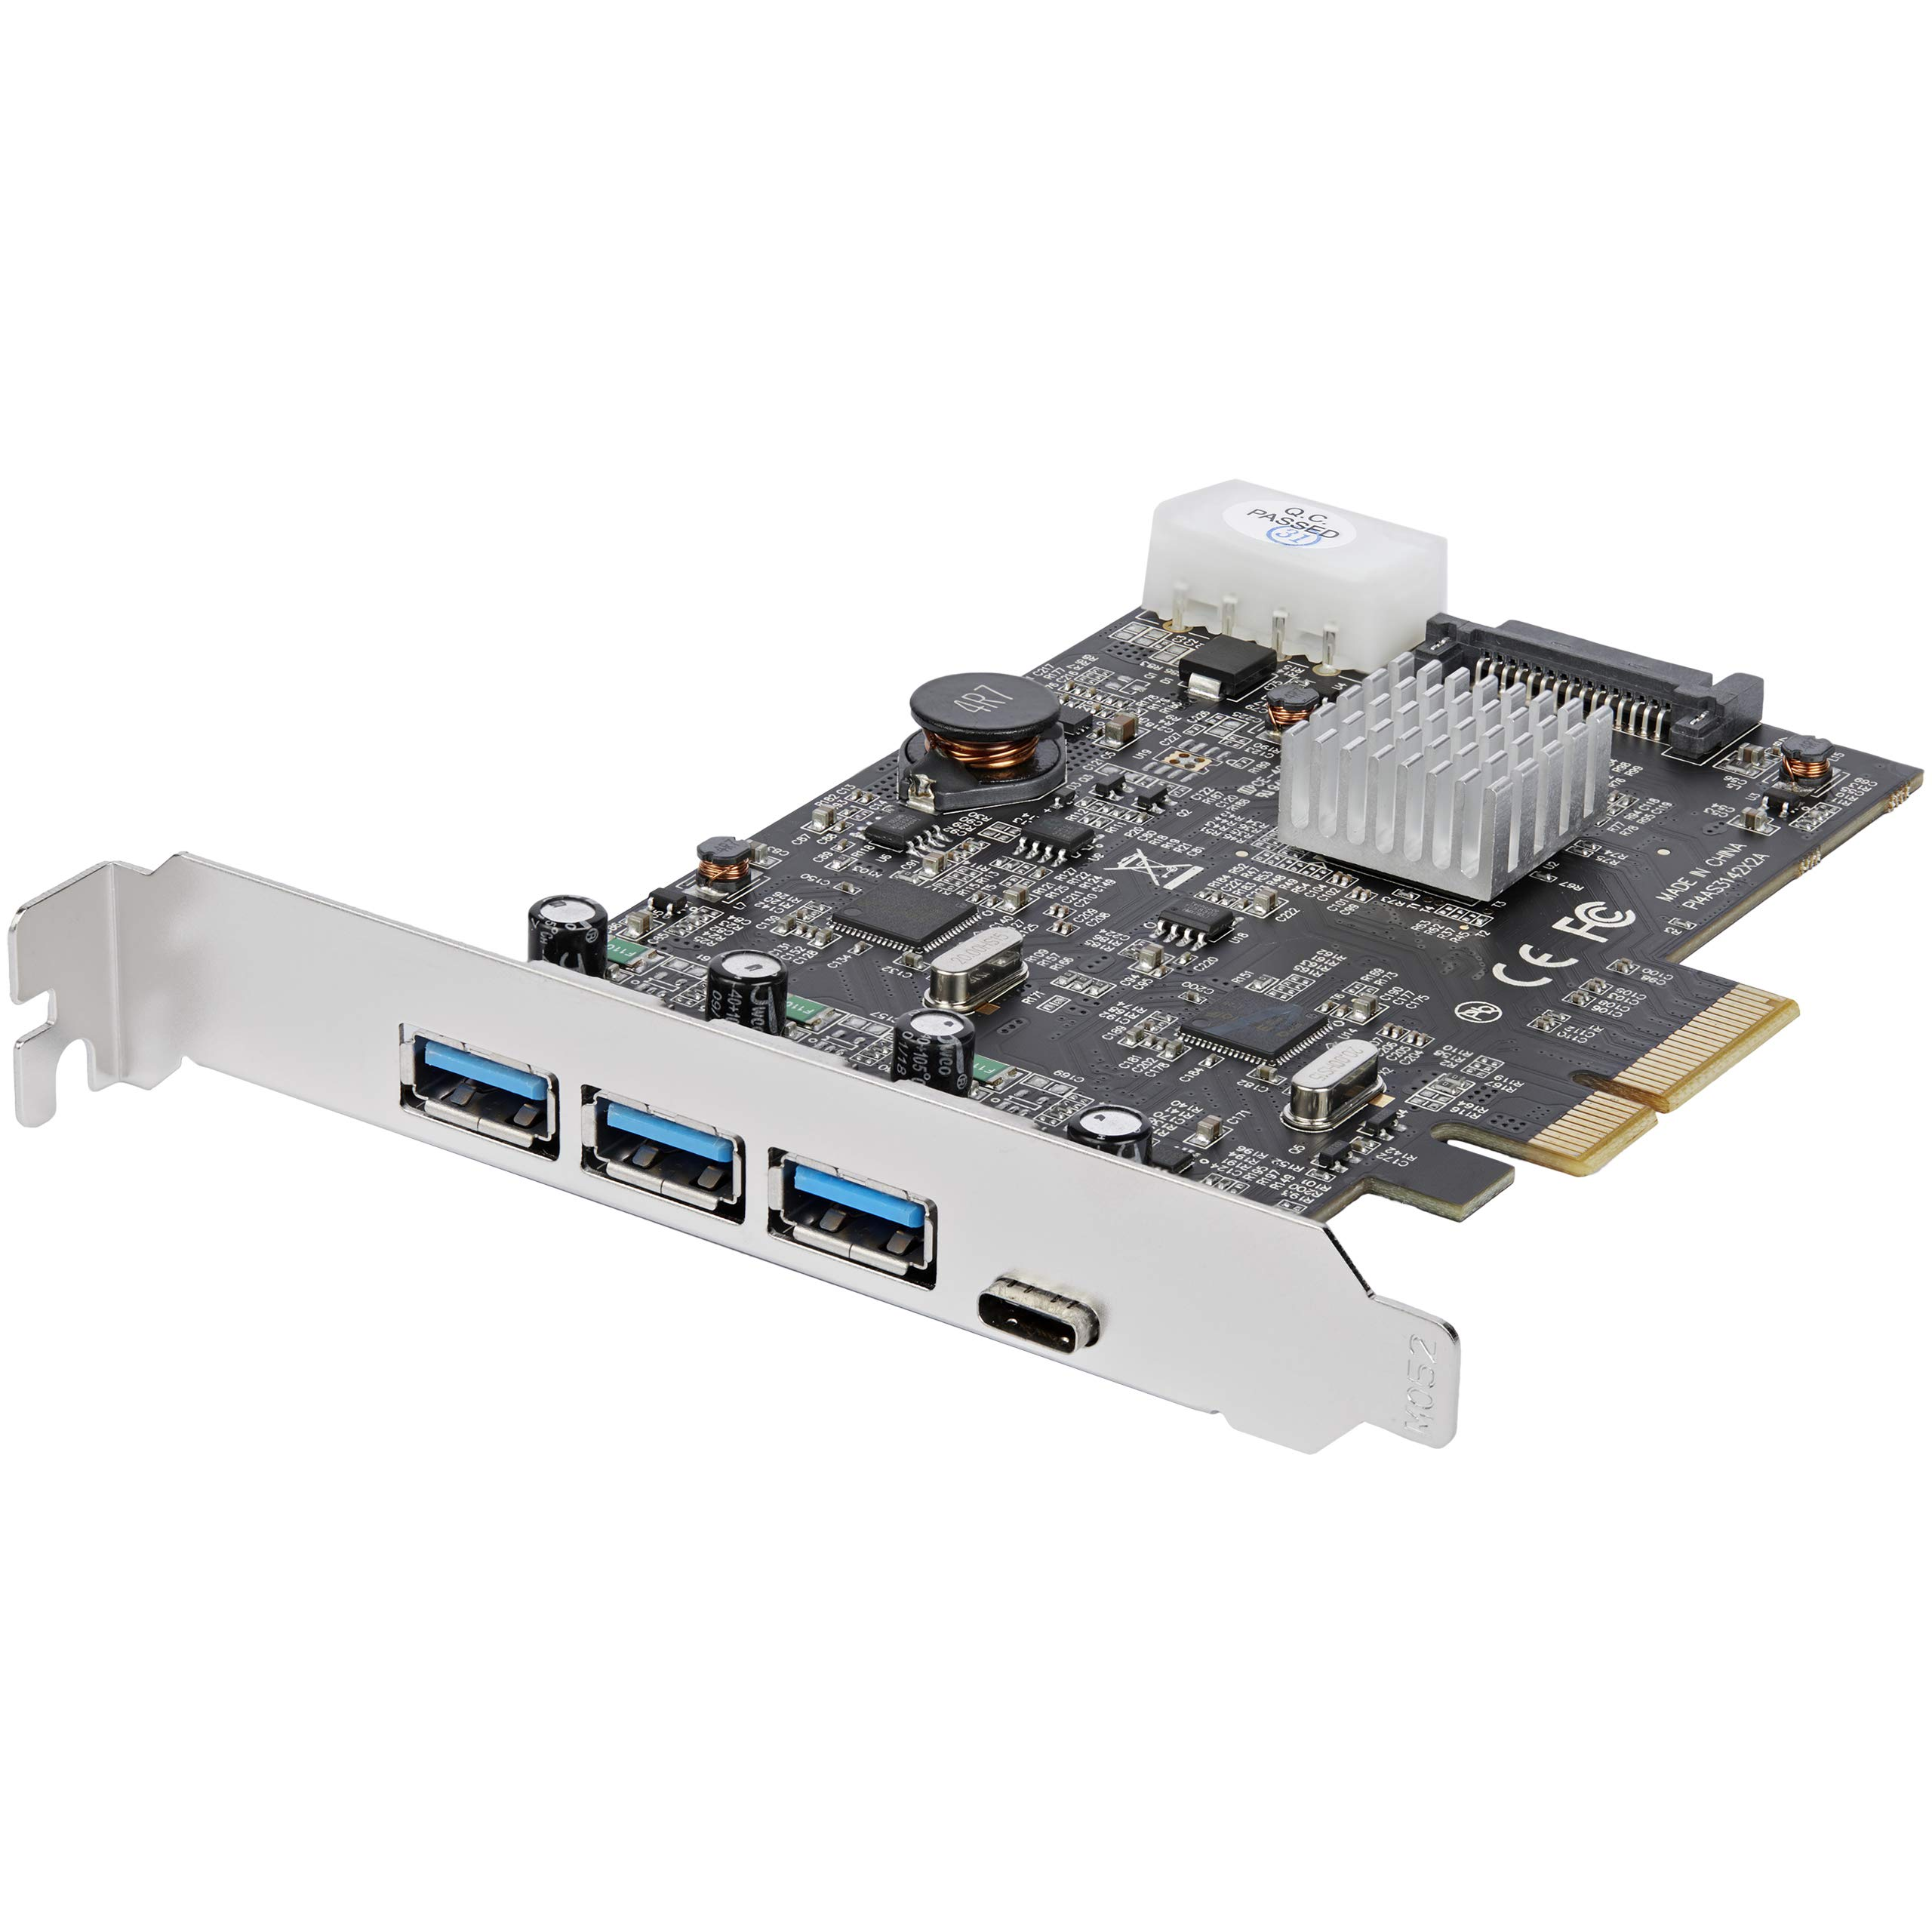 StarTech.com USB 3.1 PCIe Card - 3X USB-A and 1x USB-C - 2X Dedicated Channels - USB C PCIe Card - USB 3.1 Controller Card (PEXUS313AC2V) by StarTech